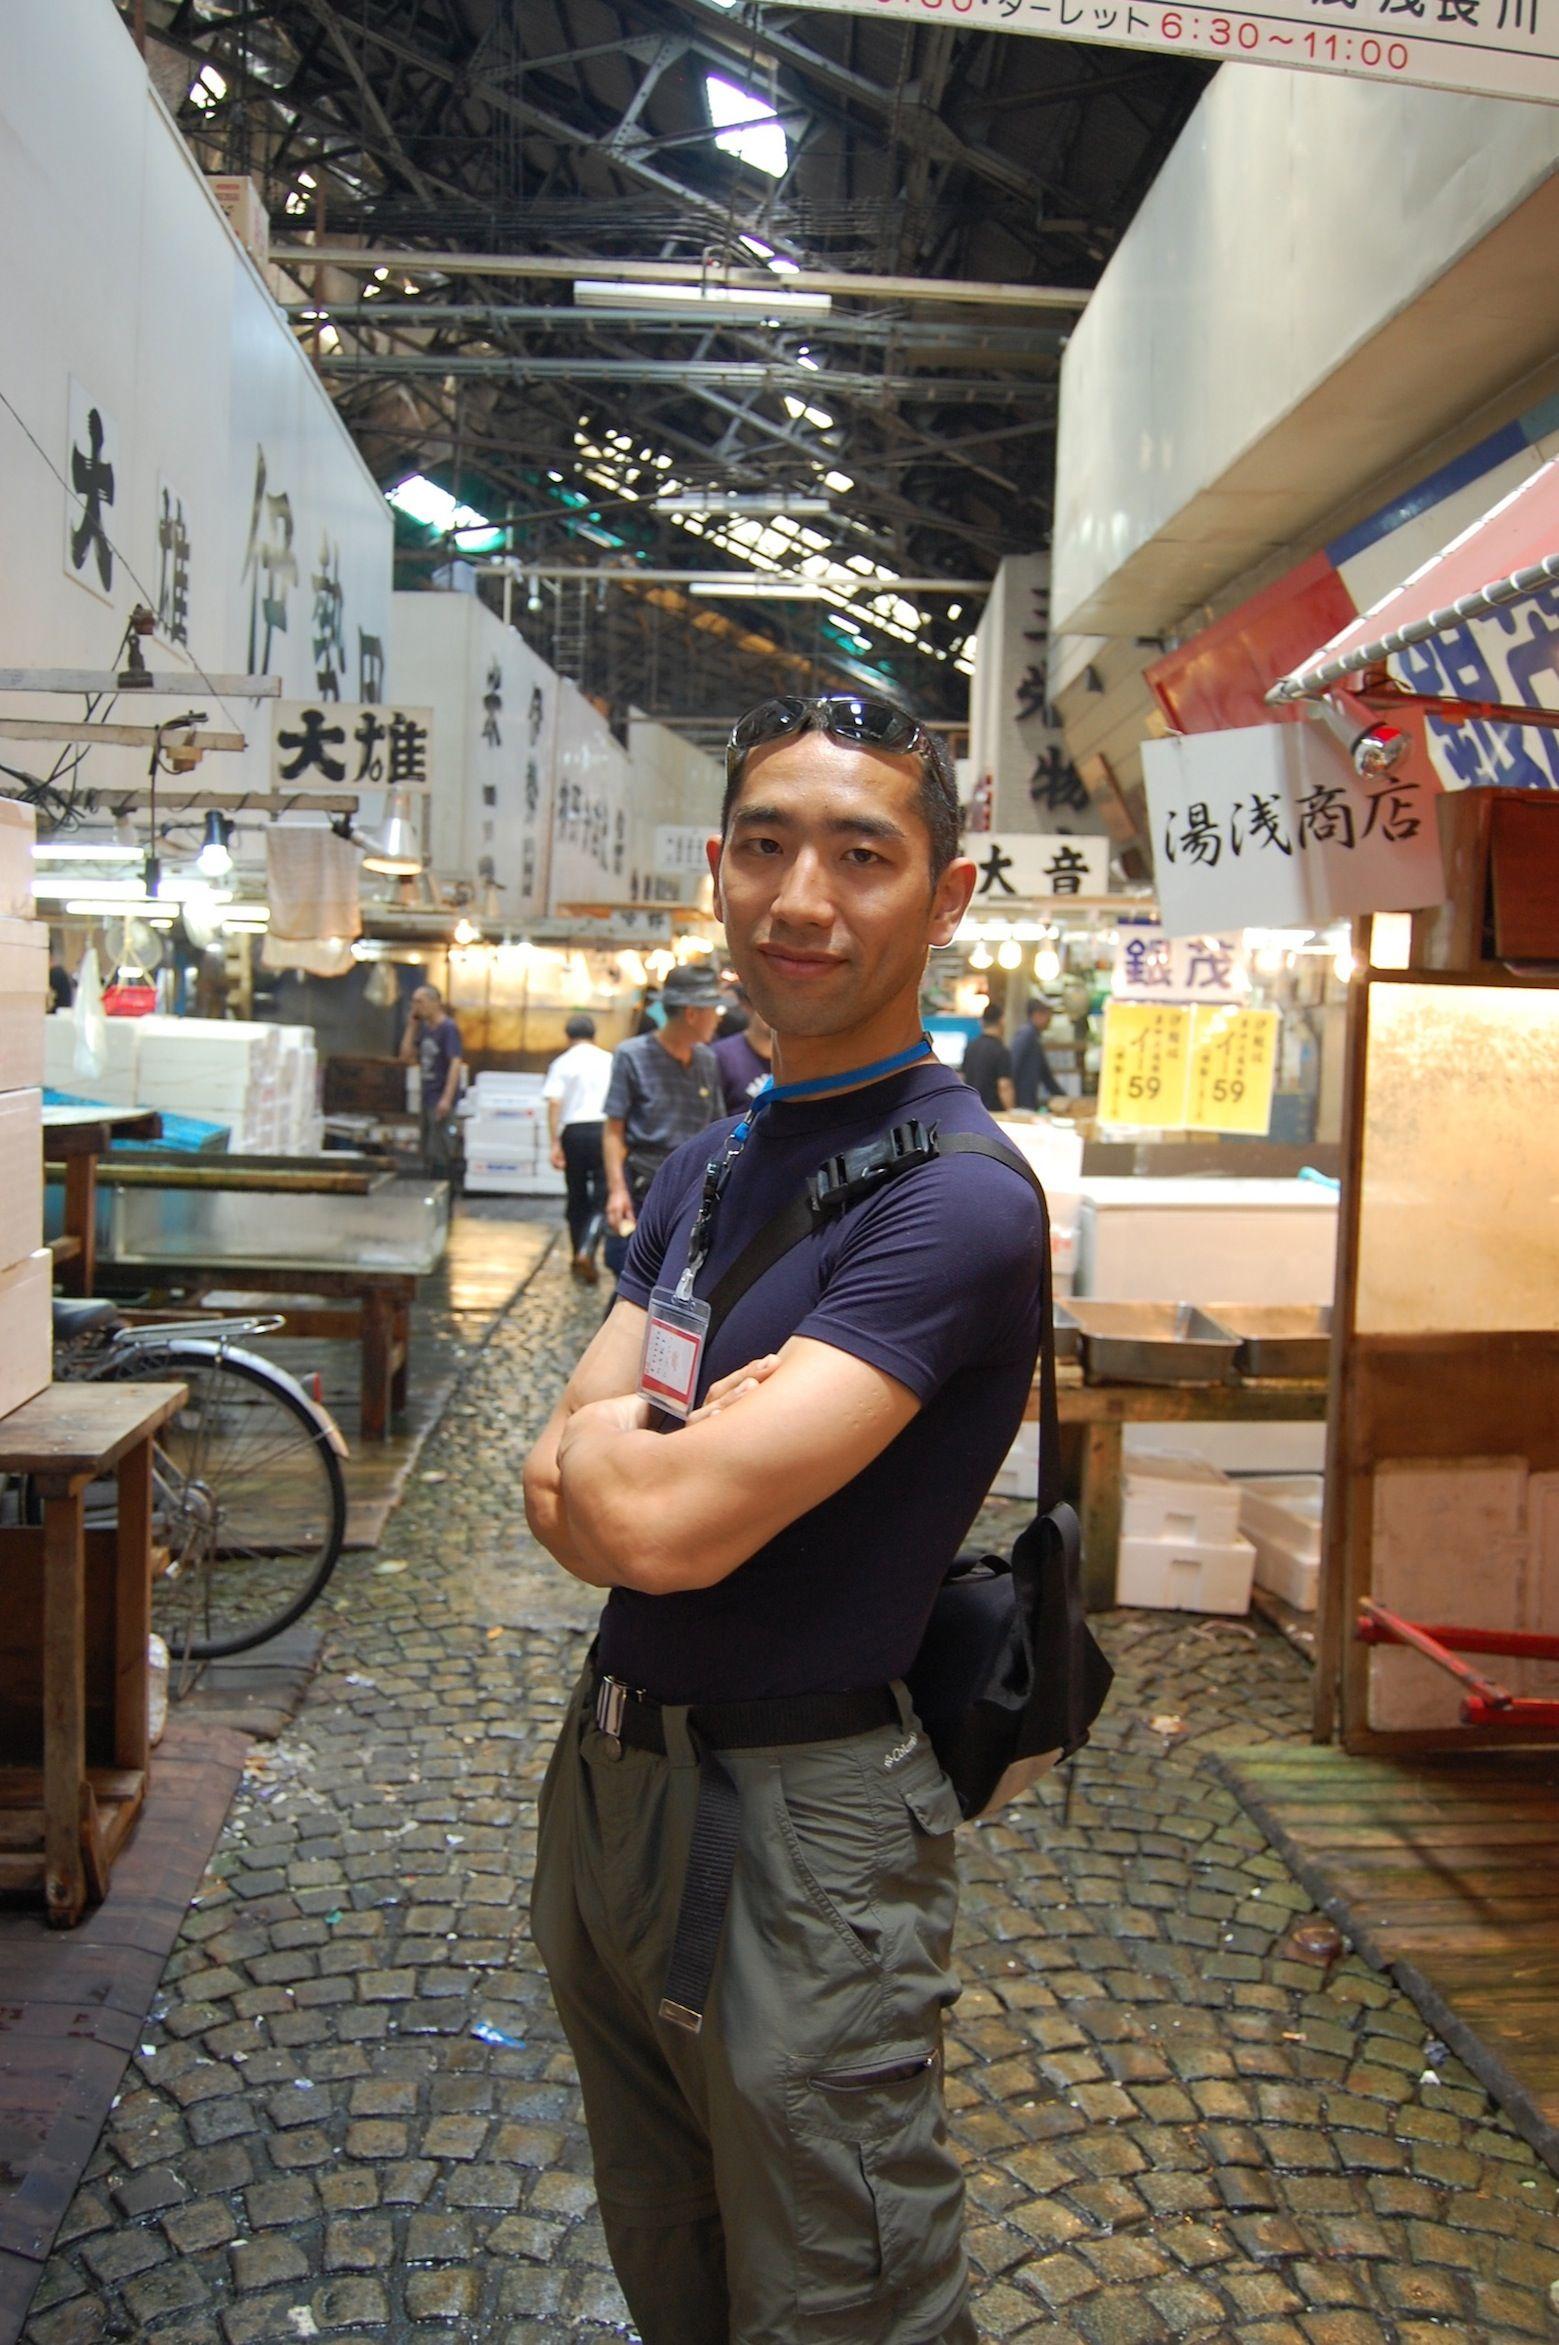 Shinji at Tsukiji Market. Shinji is a former buyer at Tsukiji Market and is currently attending culinary school to study Japanese cuisine. We look forward to opening our cooking school next year.